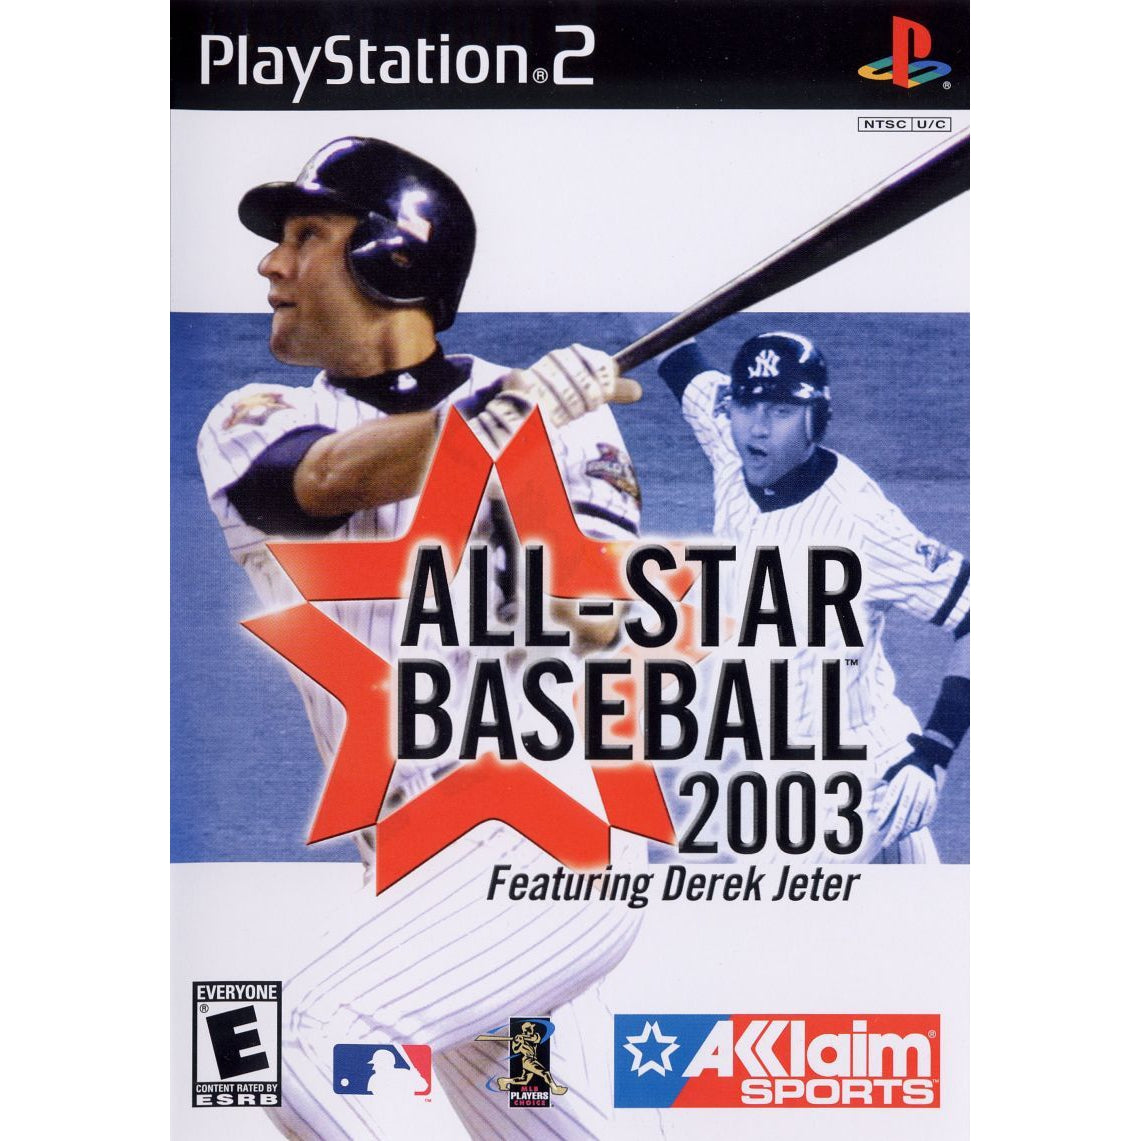 All-Star Baseball 2003 - PlayStation 2 (PS2) Game Complete - YourGamingShop.com - Buy, Sell, Trade Video Games Online. 120 Day Warranty. Satisfaction Guaranteed.